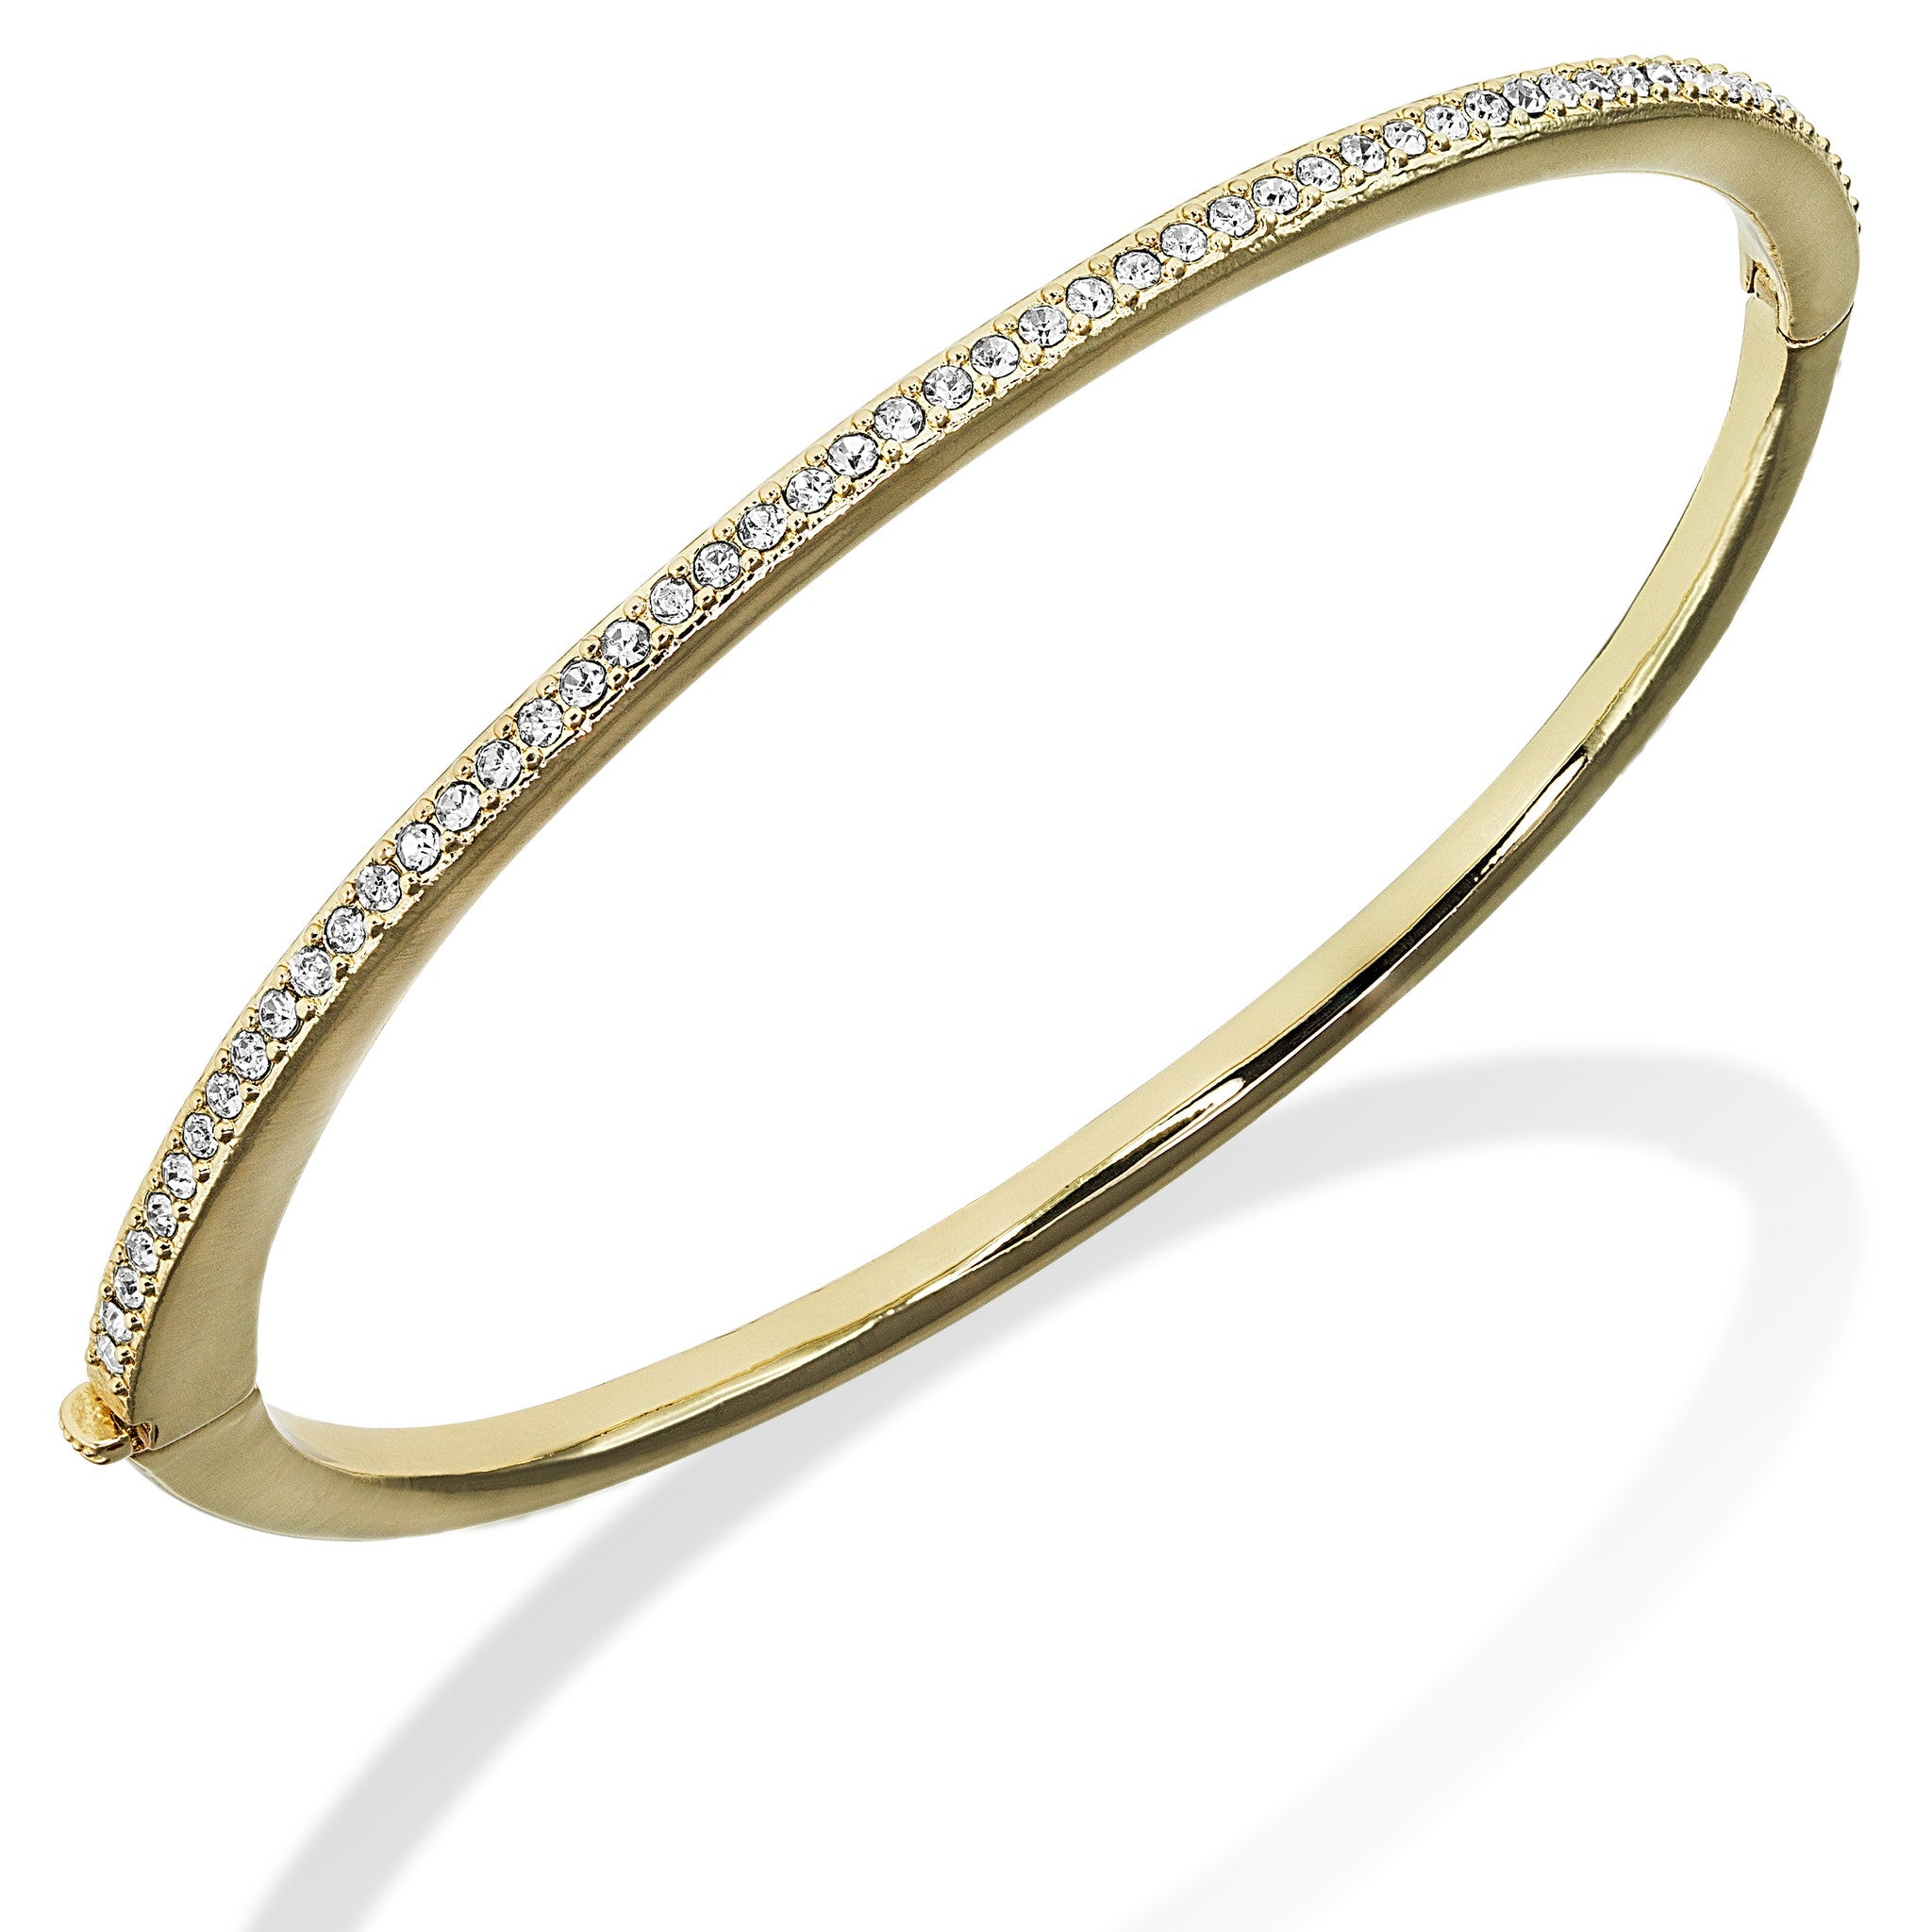 bangle pave spade new sitegenesis kate bangles products bridesmaid york idiom